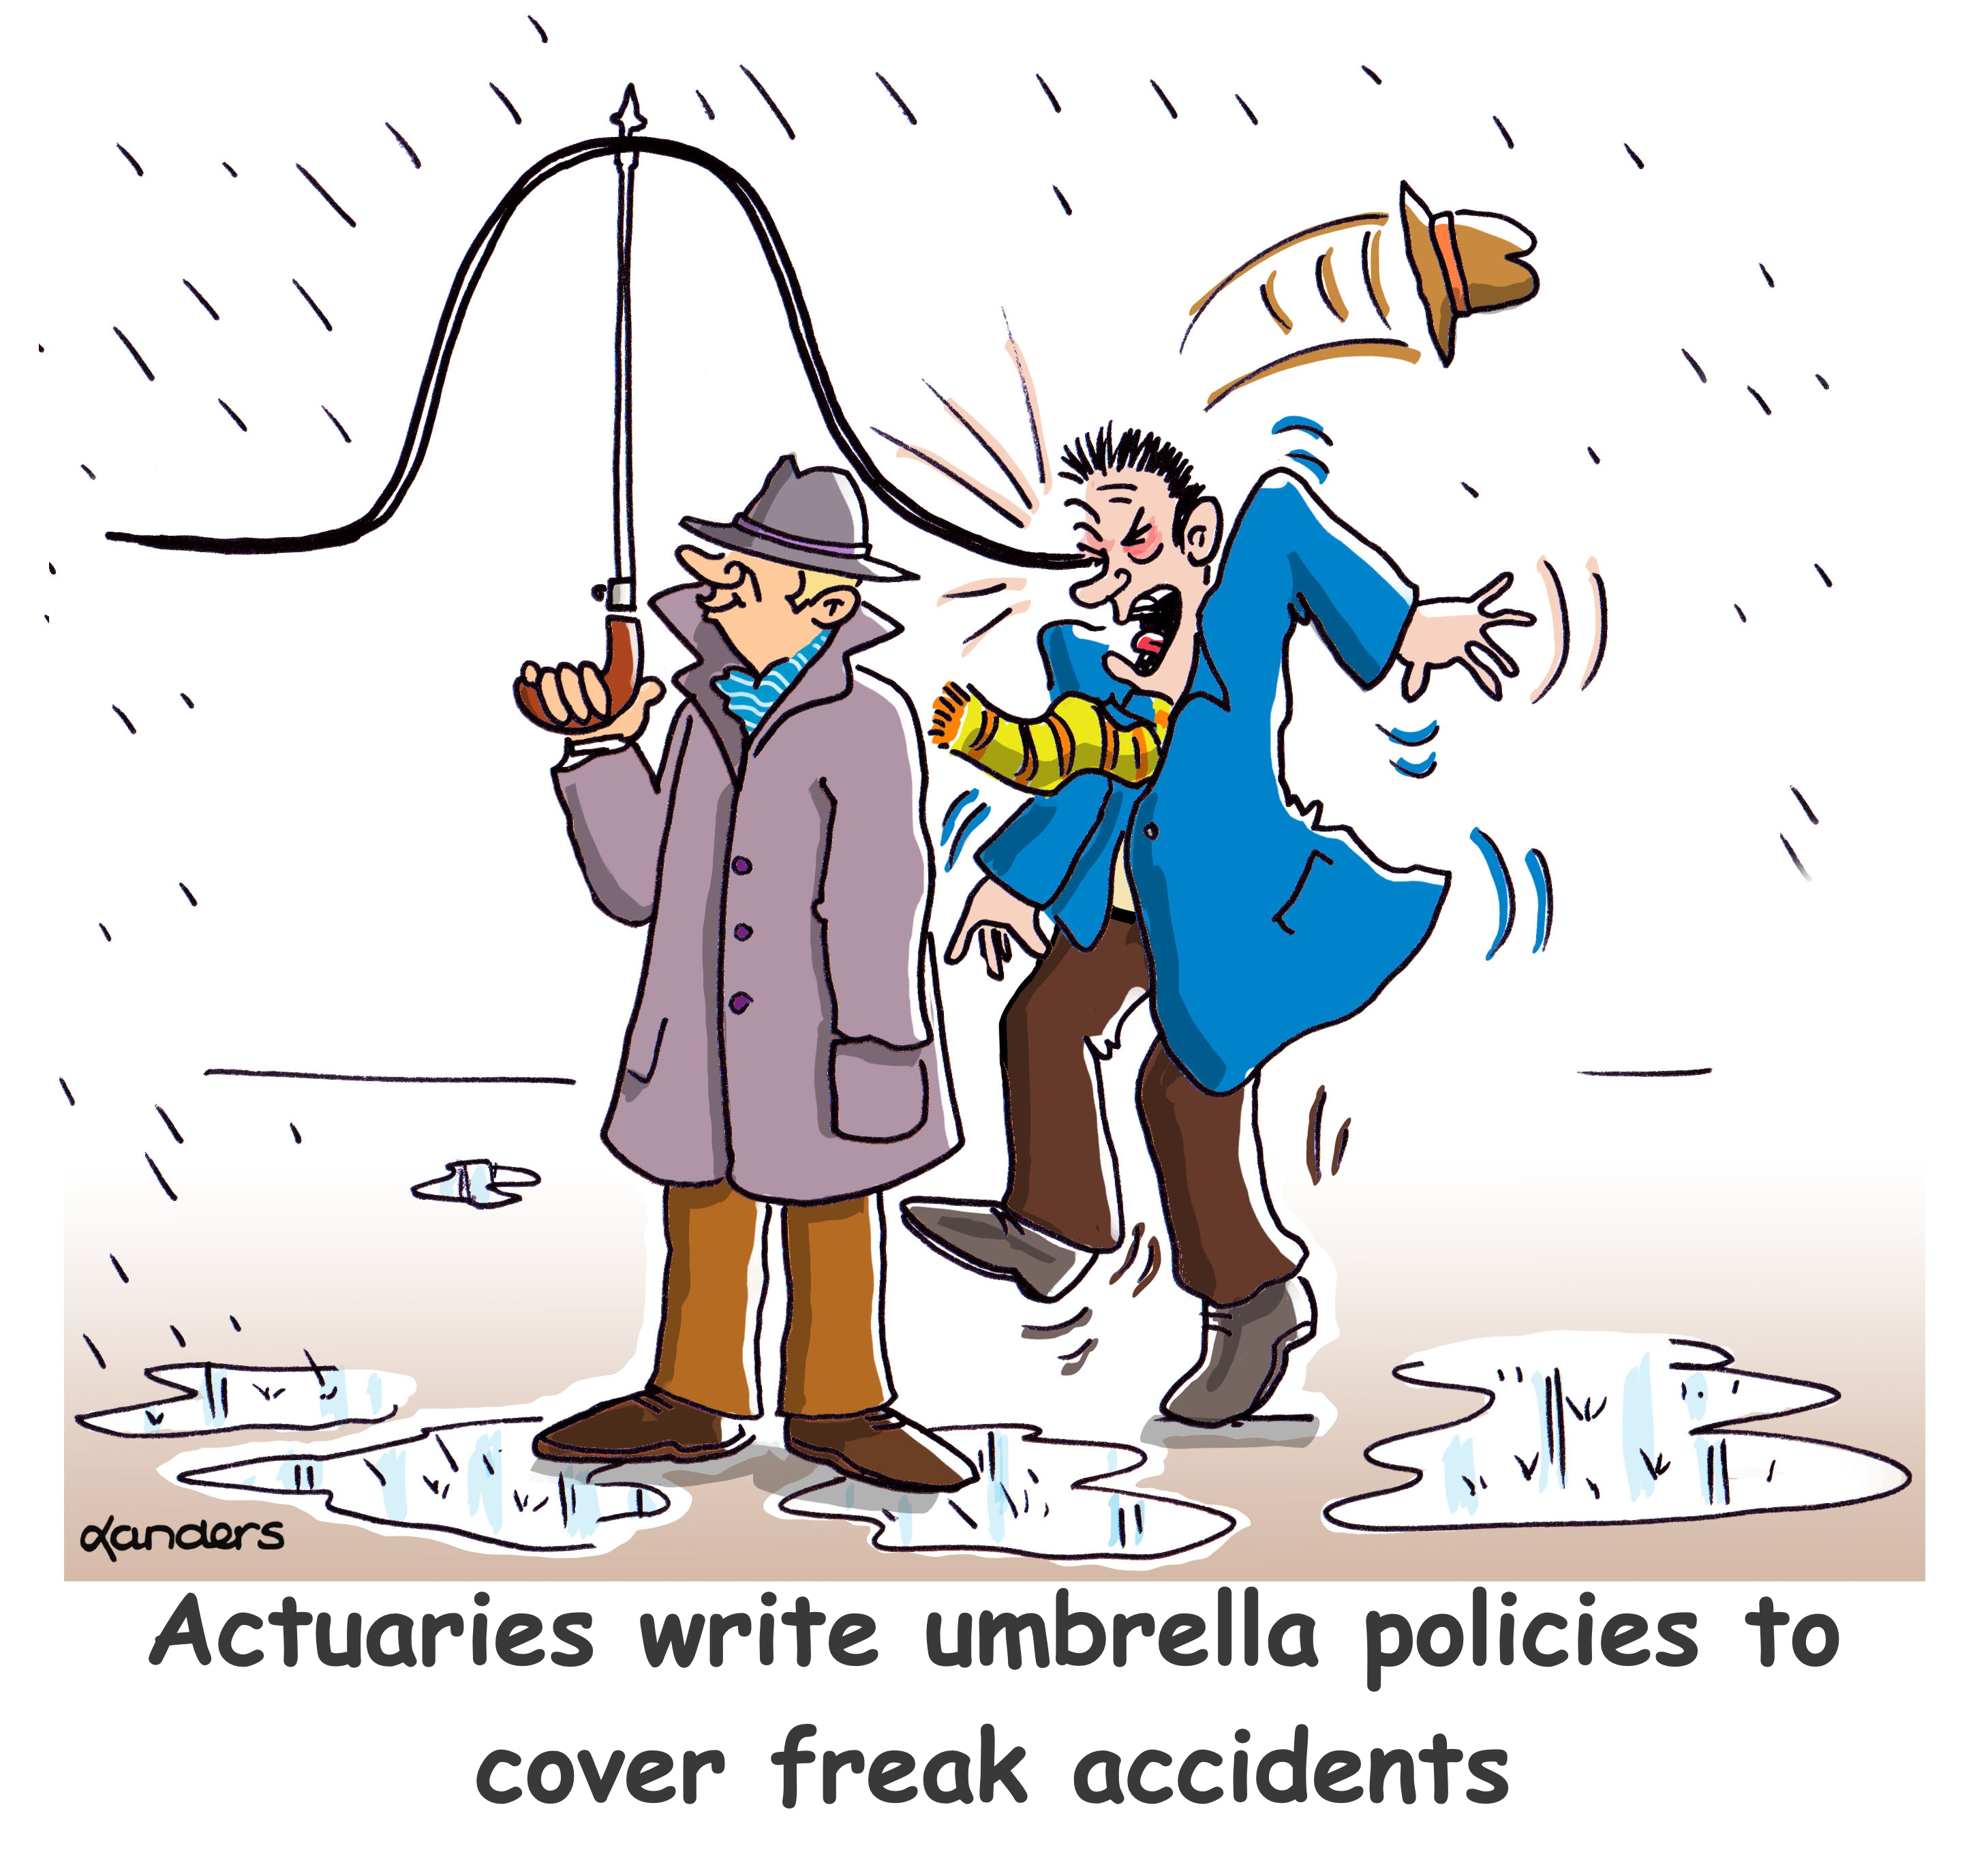 cartoon with man using an umbrella that looks like the normal curven